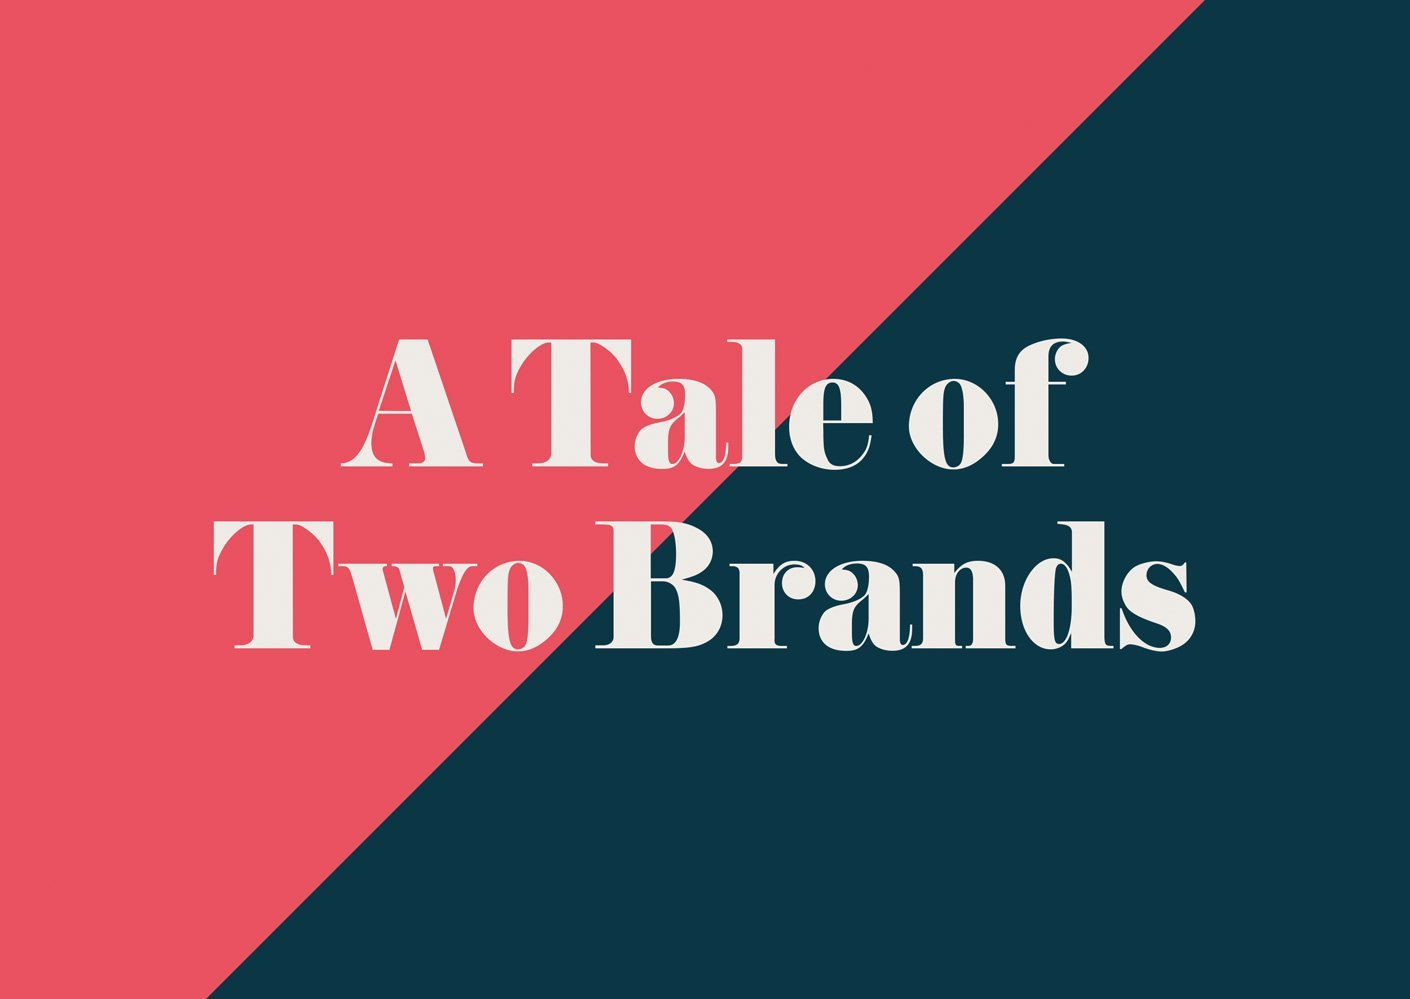 'A Tale of Two Brands' free branding ebook by BML - single image